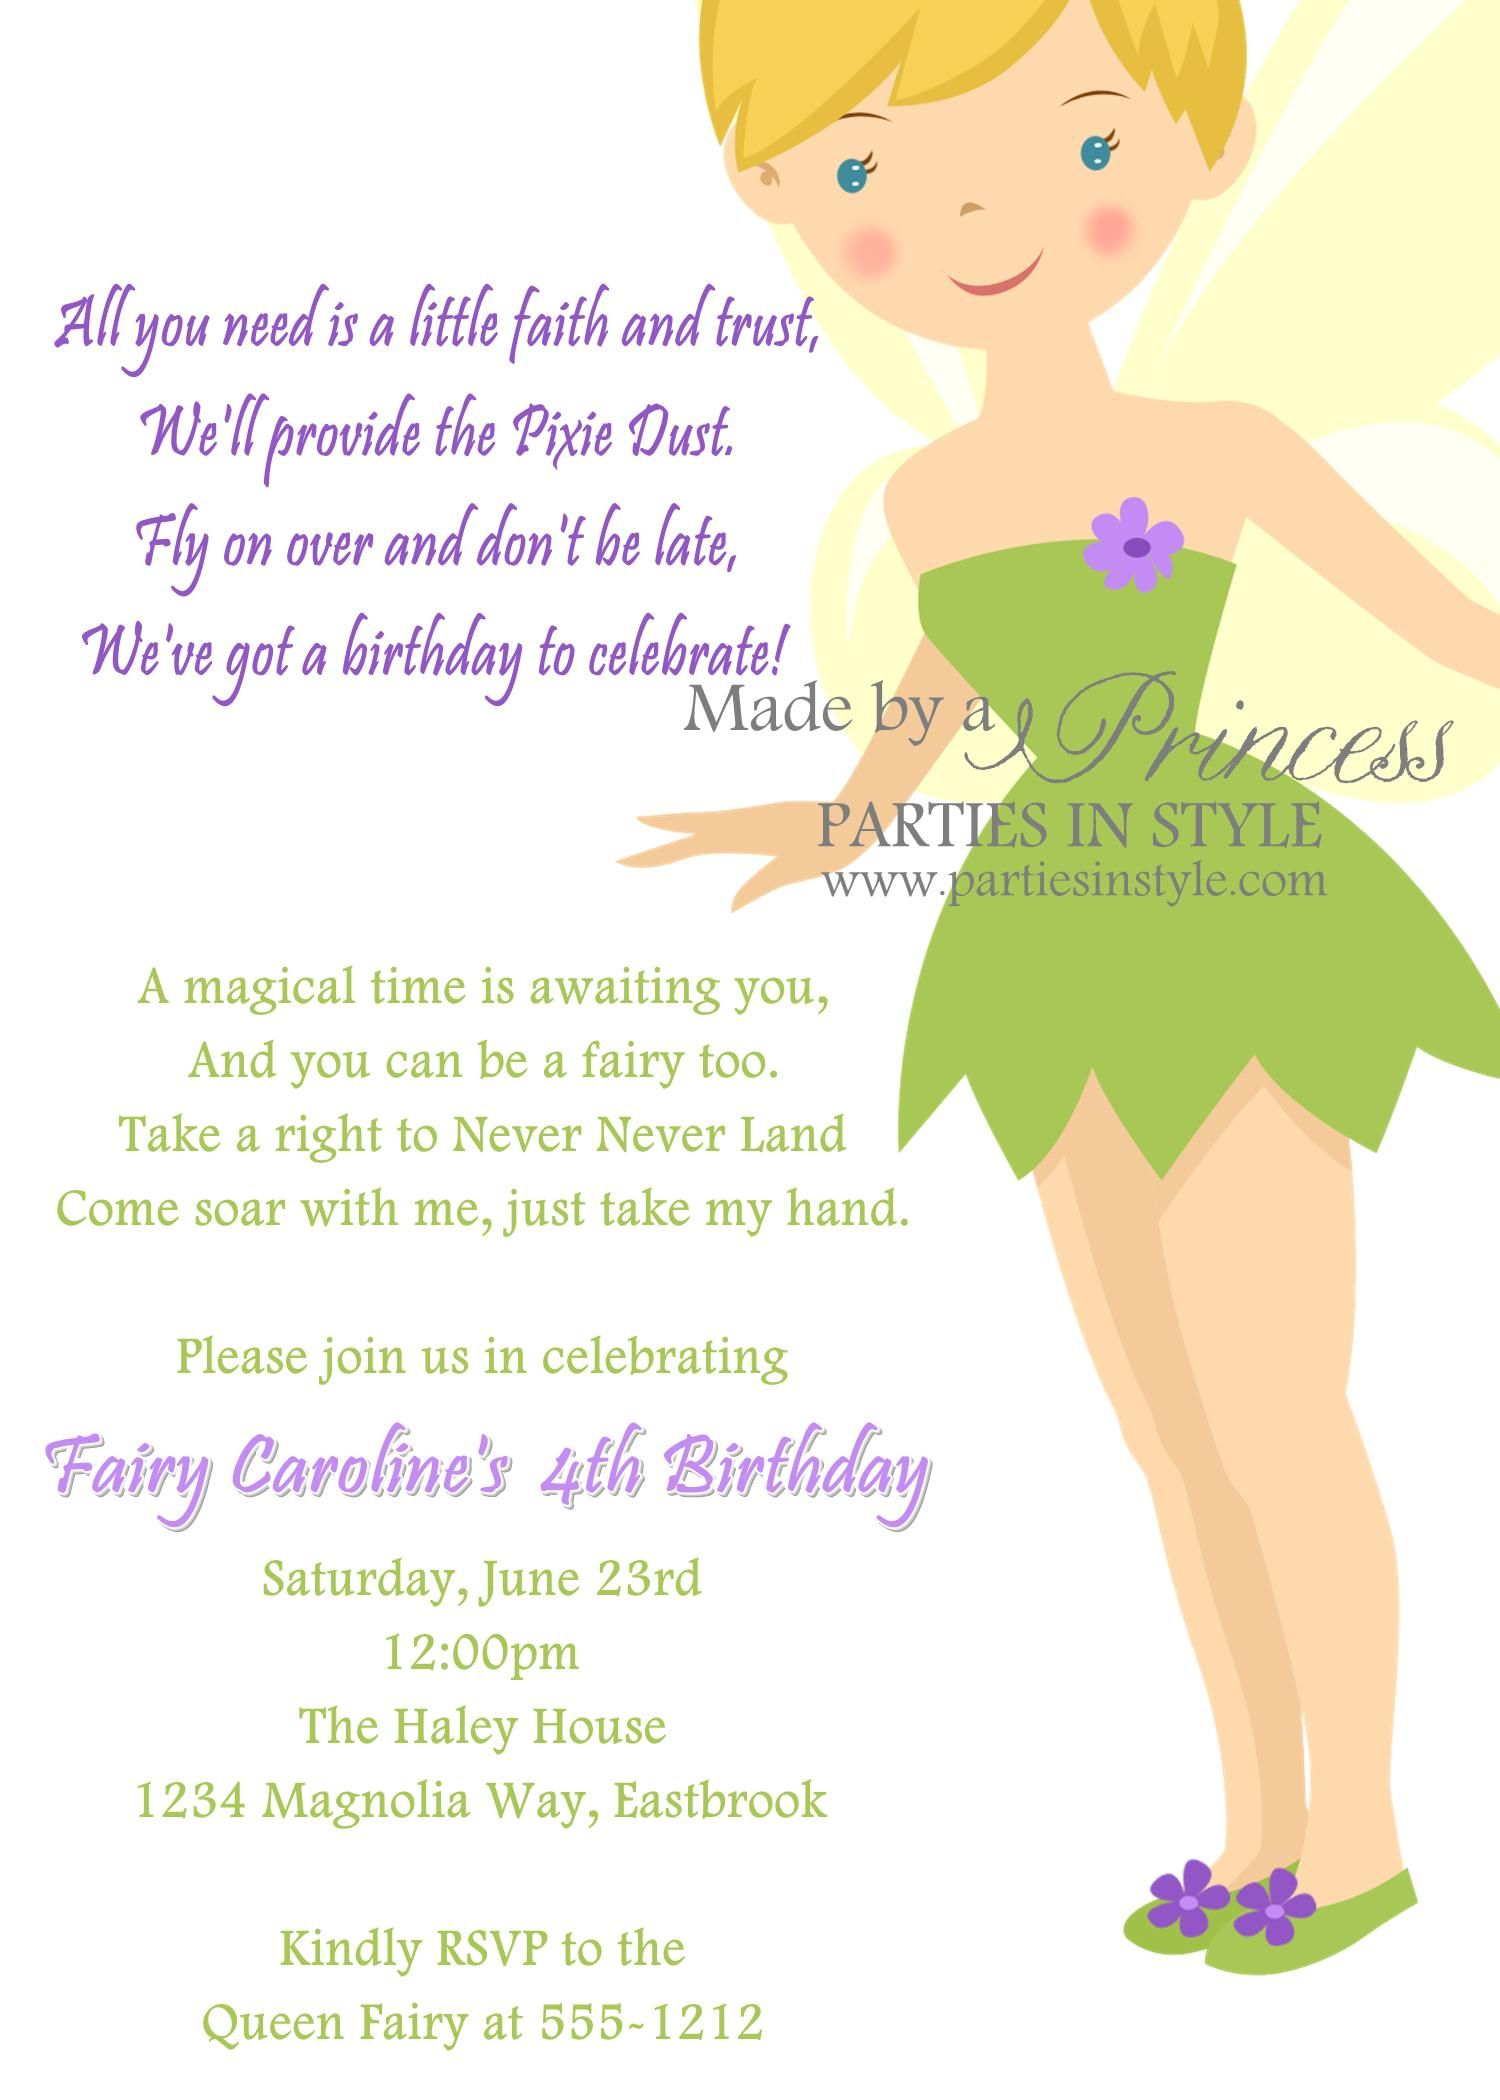 Birthday Invitation - Princess Series Tinkerbell - Printable DIY ...